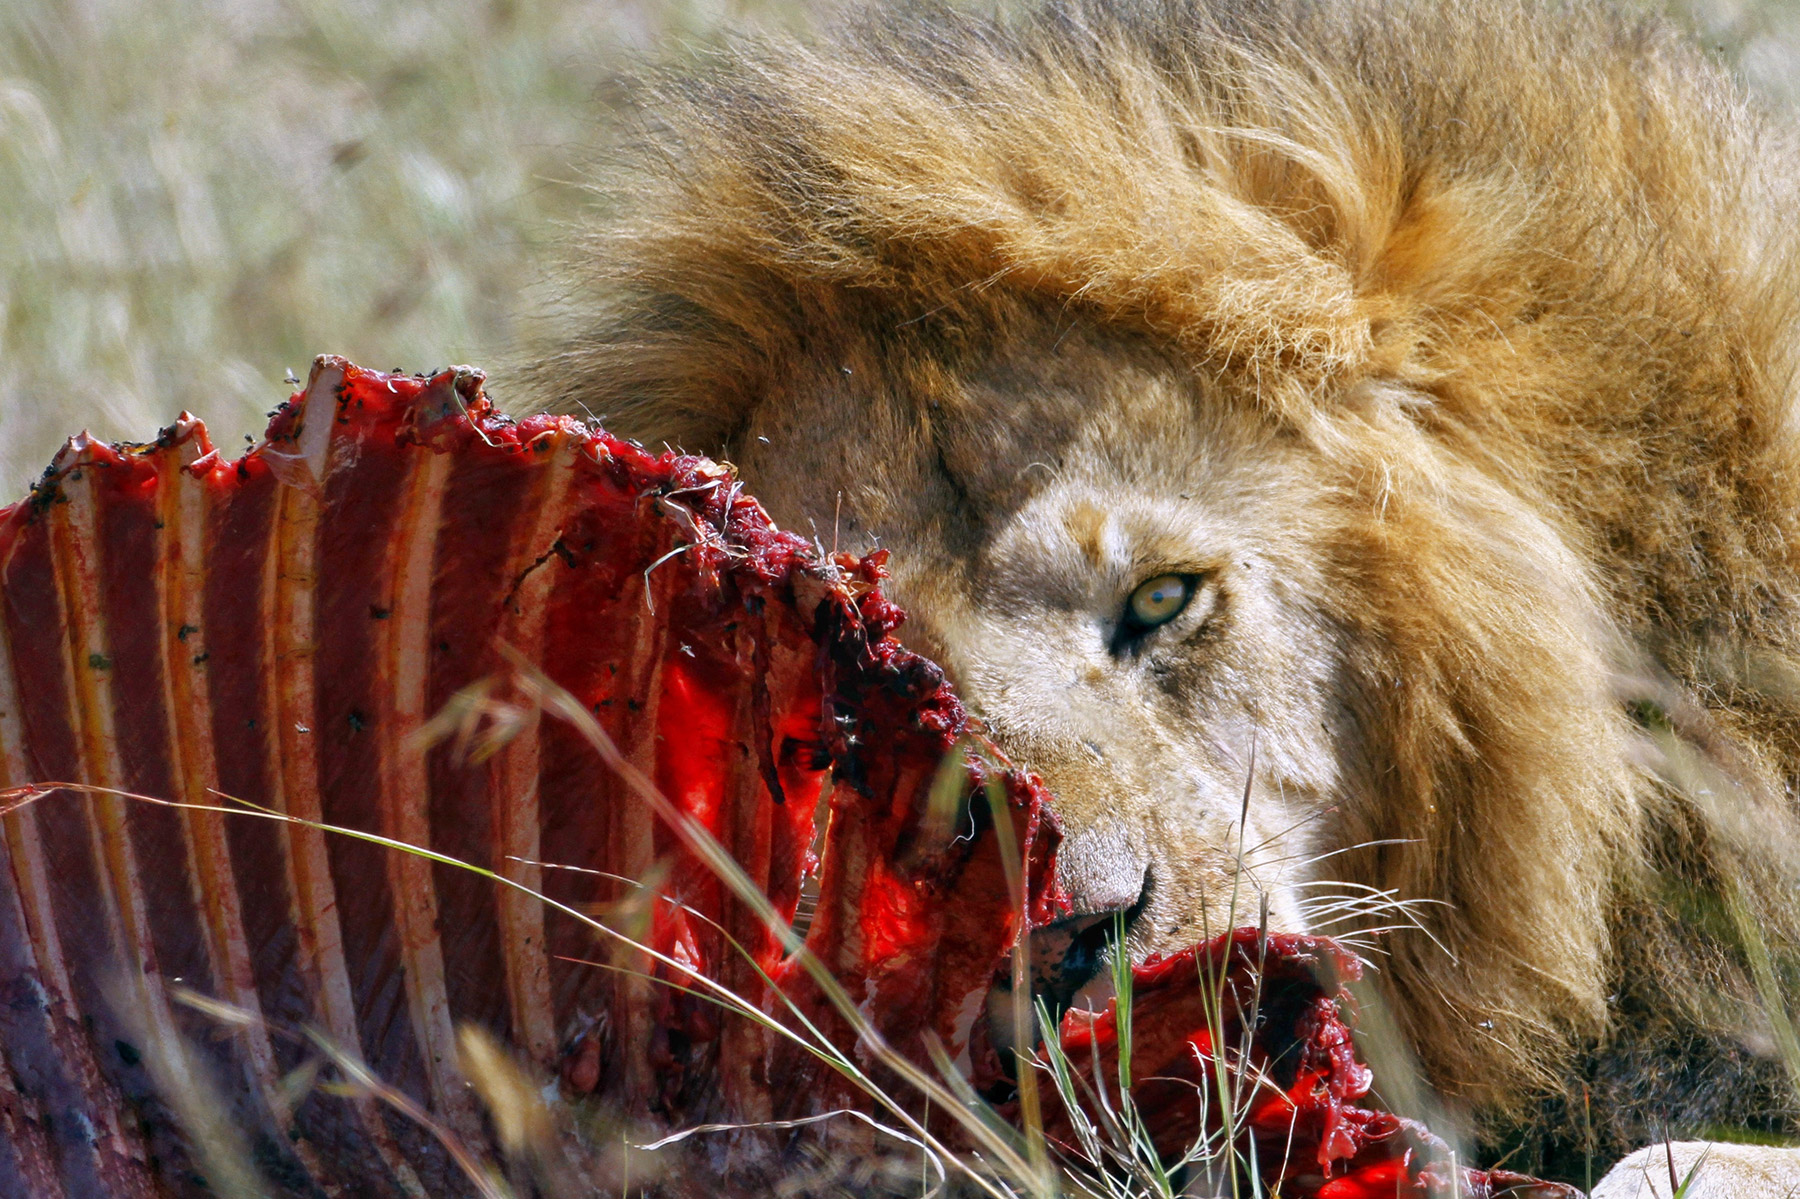 Are You a Lion or a Leper? How to Rise Above the Battle of Optics vs Action